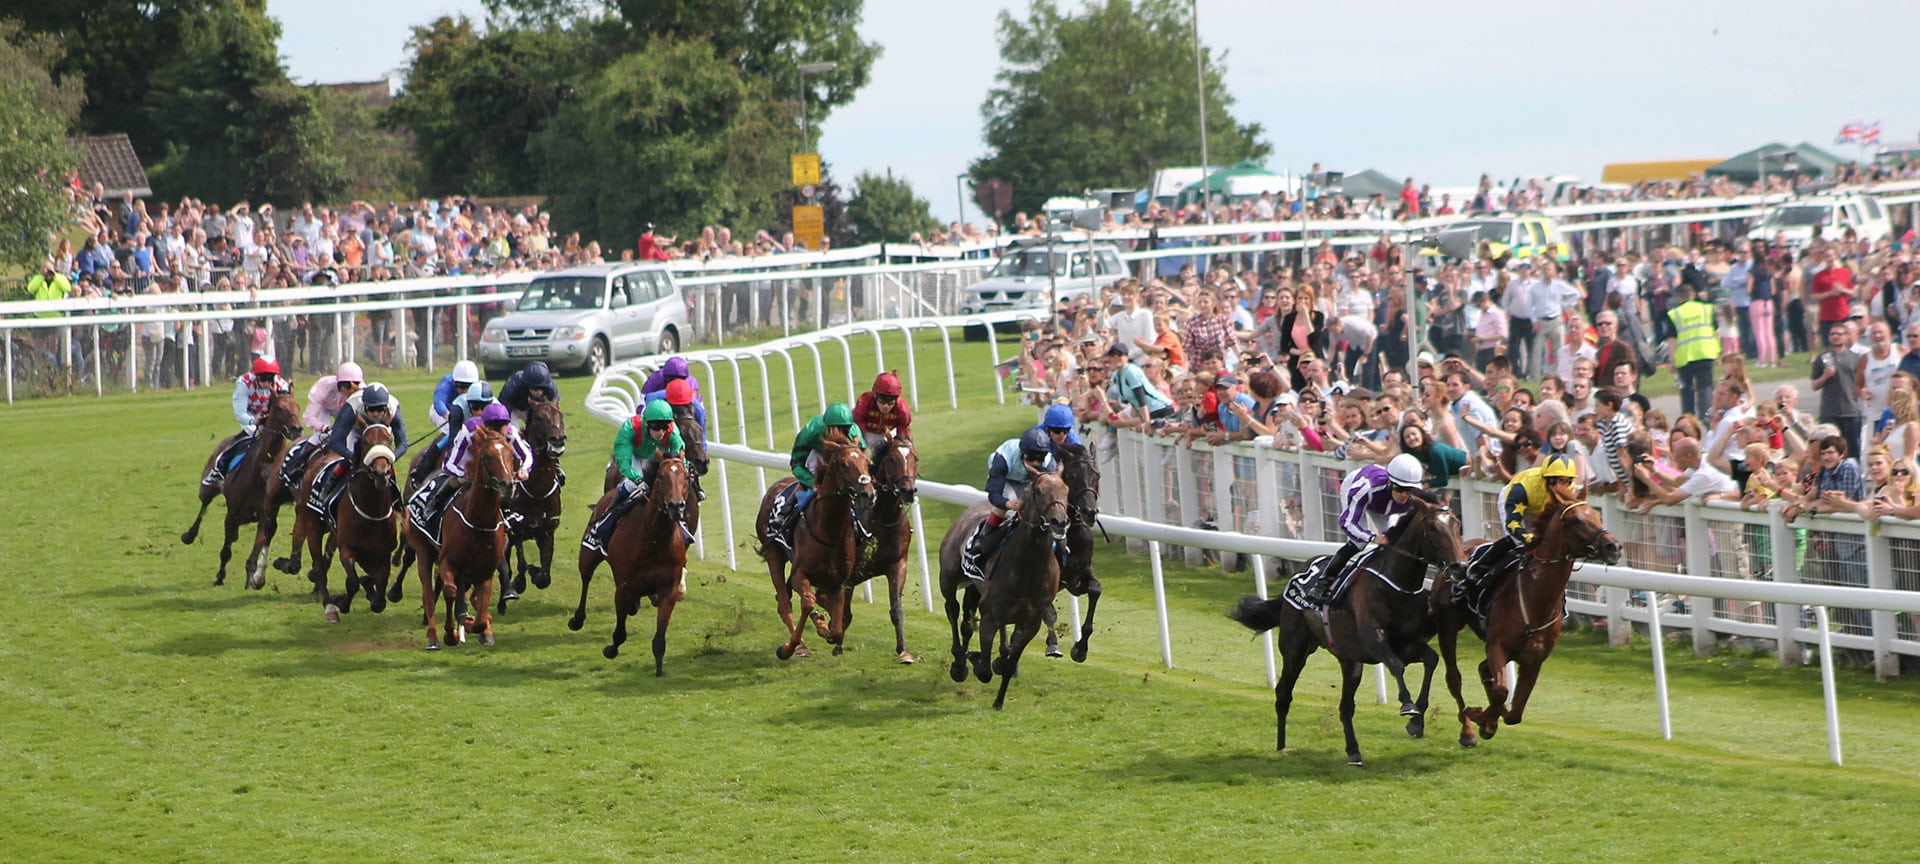 The Derby Stakes, popularly known as the Derby, is a Group 1 flat horse race in England open to three-year-old colts and fillies. It is run at Epsom Downs Racecourse in Surrey over a distance of one mile, four furlongs and 6 yards (2,420 metres), usually on the first Saturday of June each year.